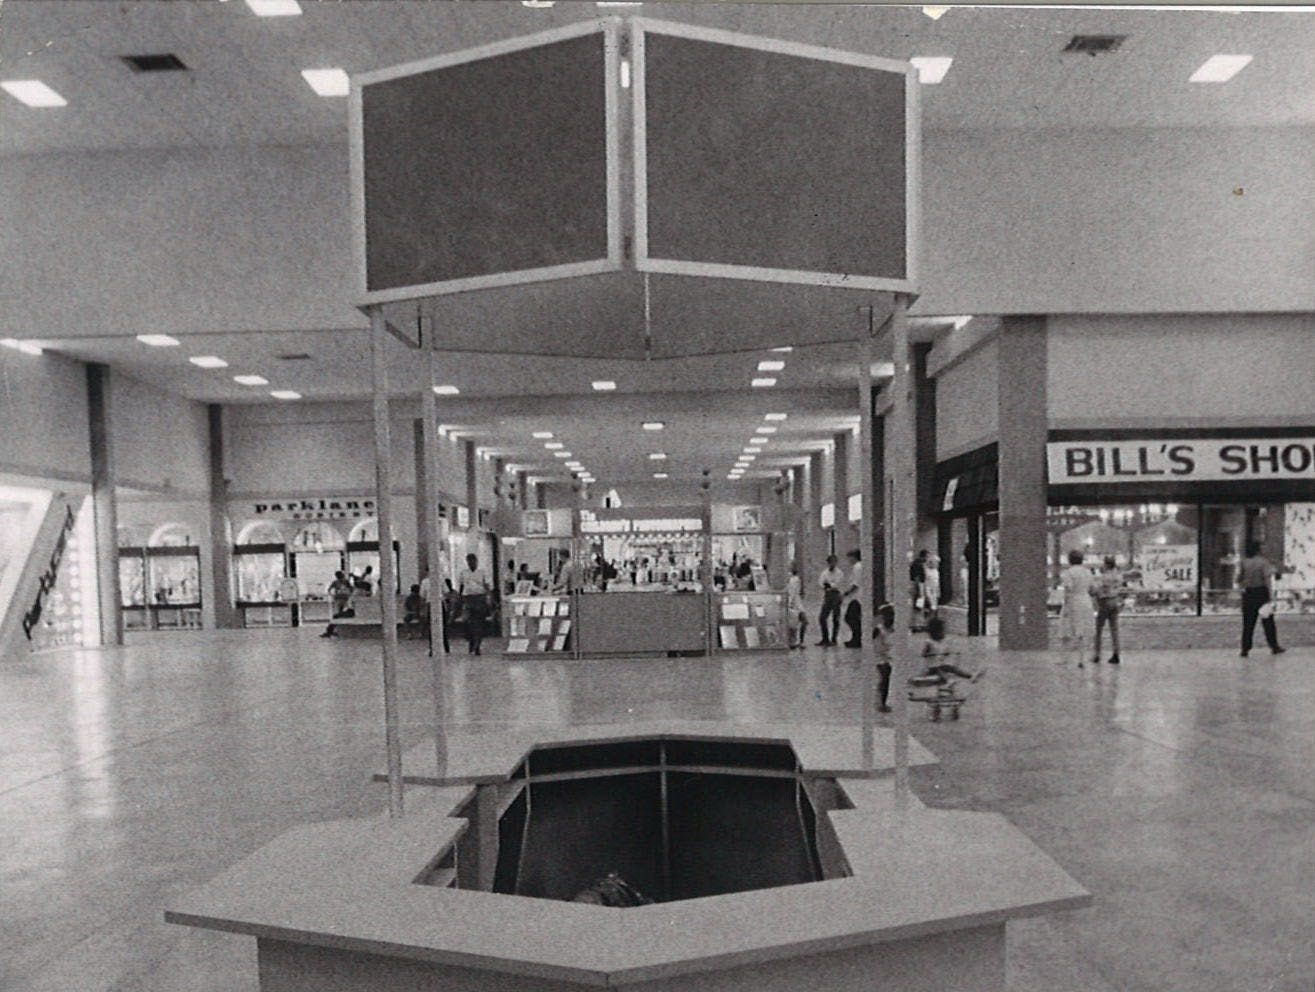 One of the information kiosks inside Padre Staples Mall in Corpus Christi the day before the grand opening celebrations on July 30, 1970.